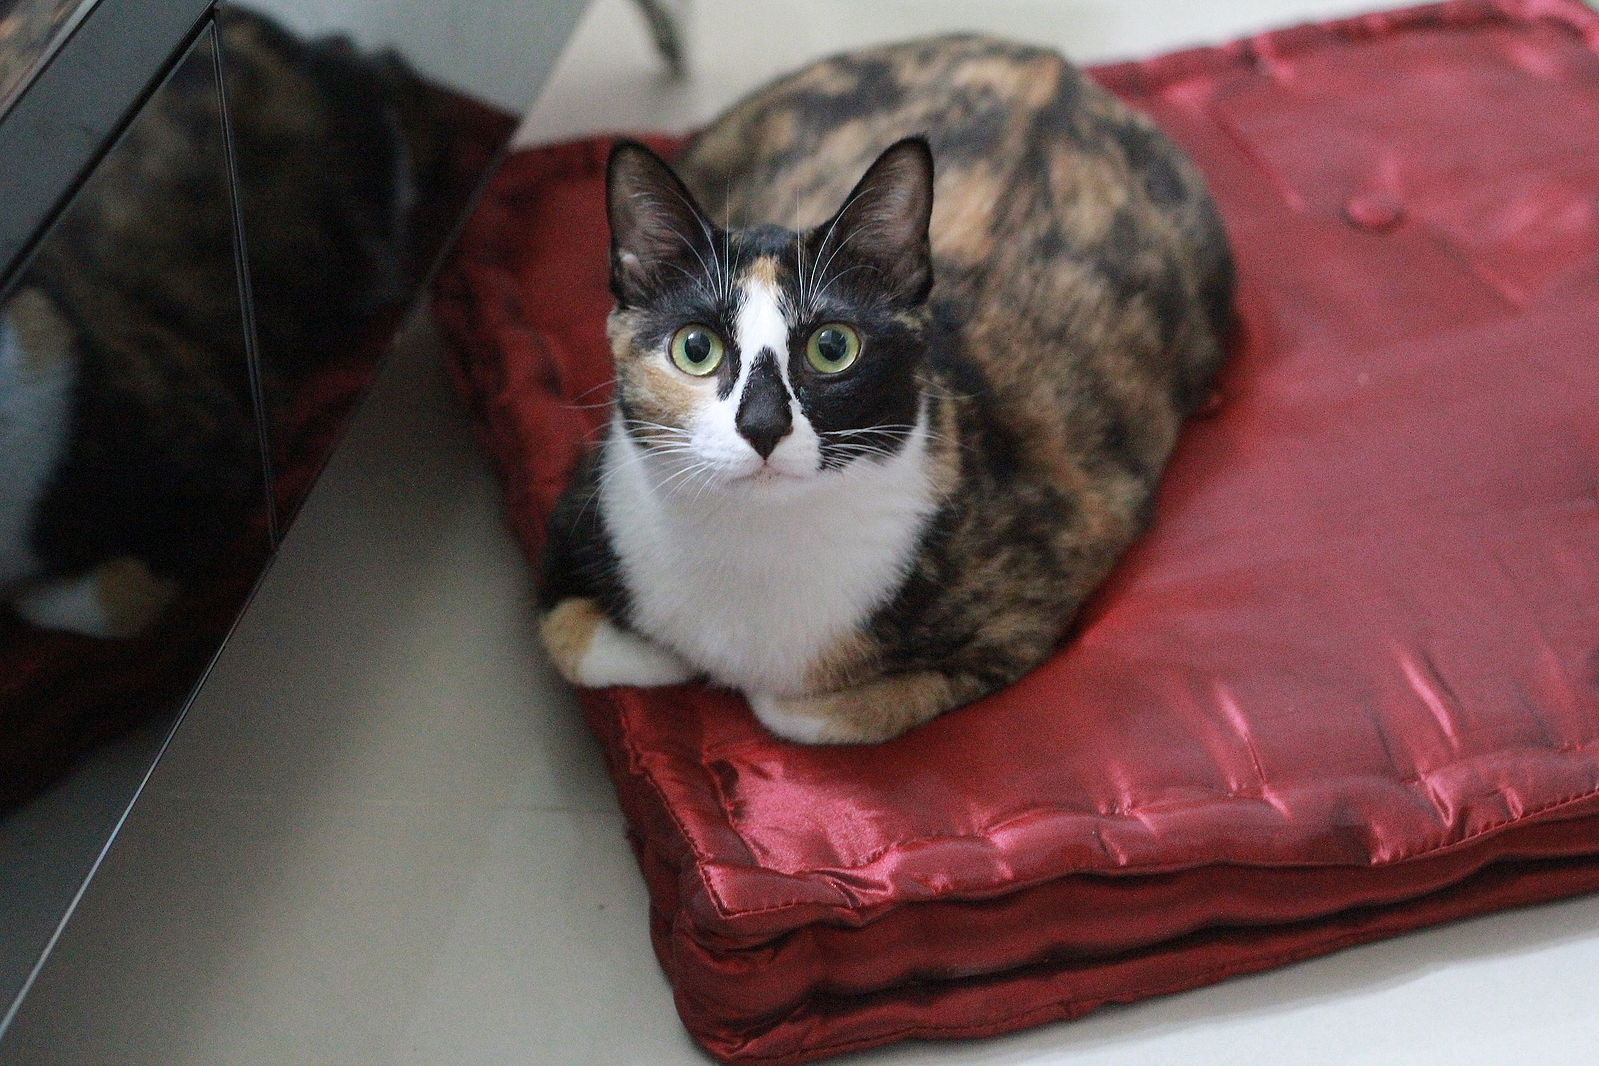 Calico_Cat_on_a_red_cushion.jpg